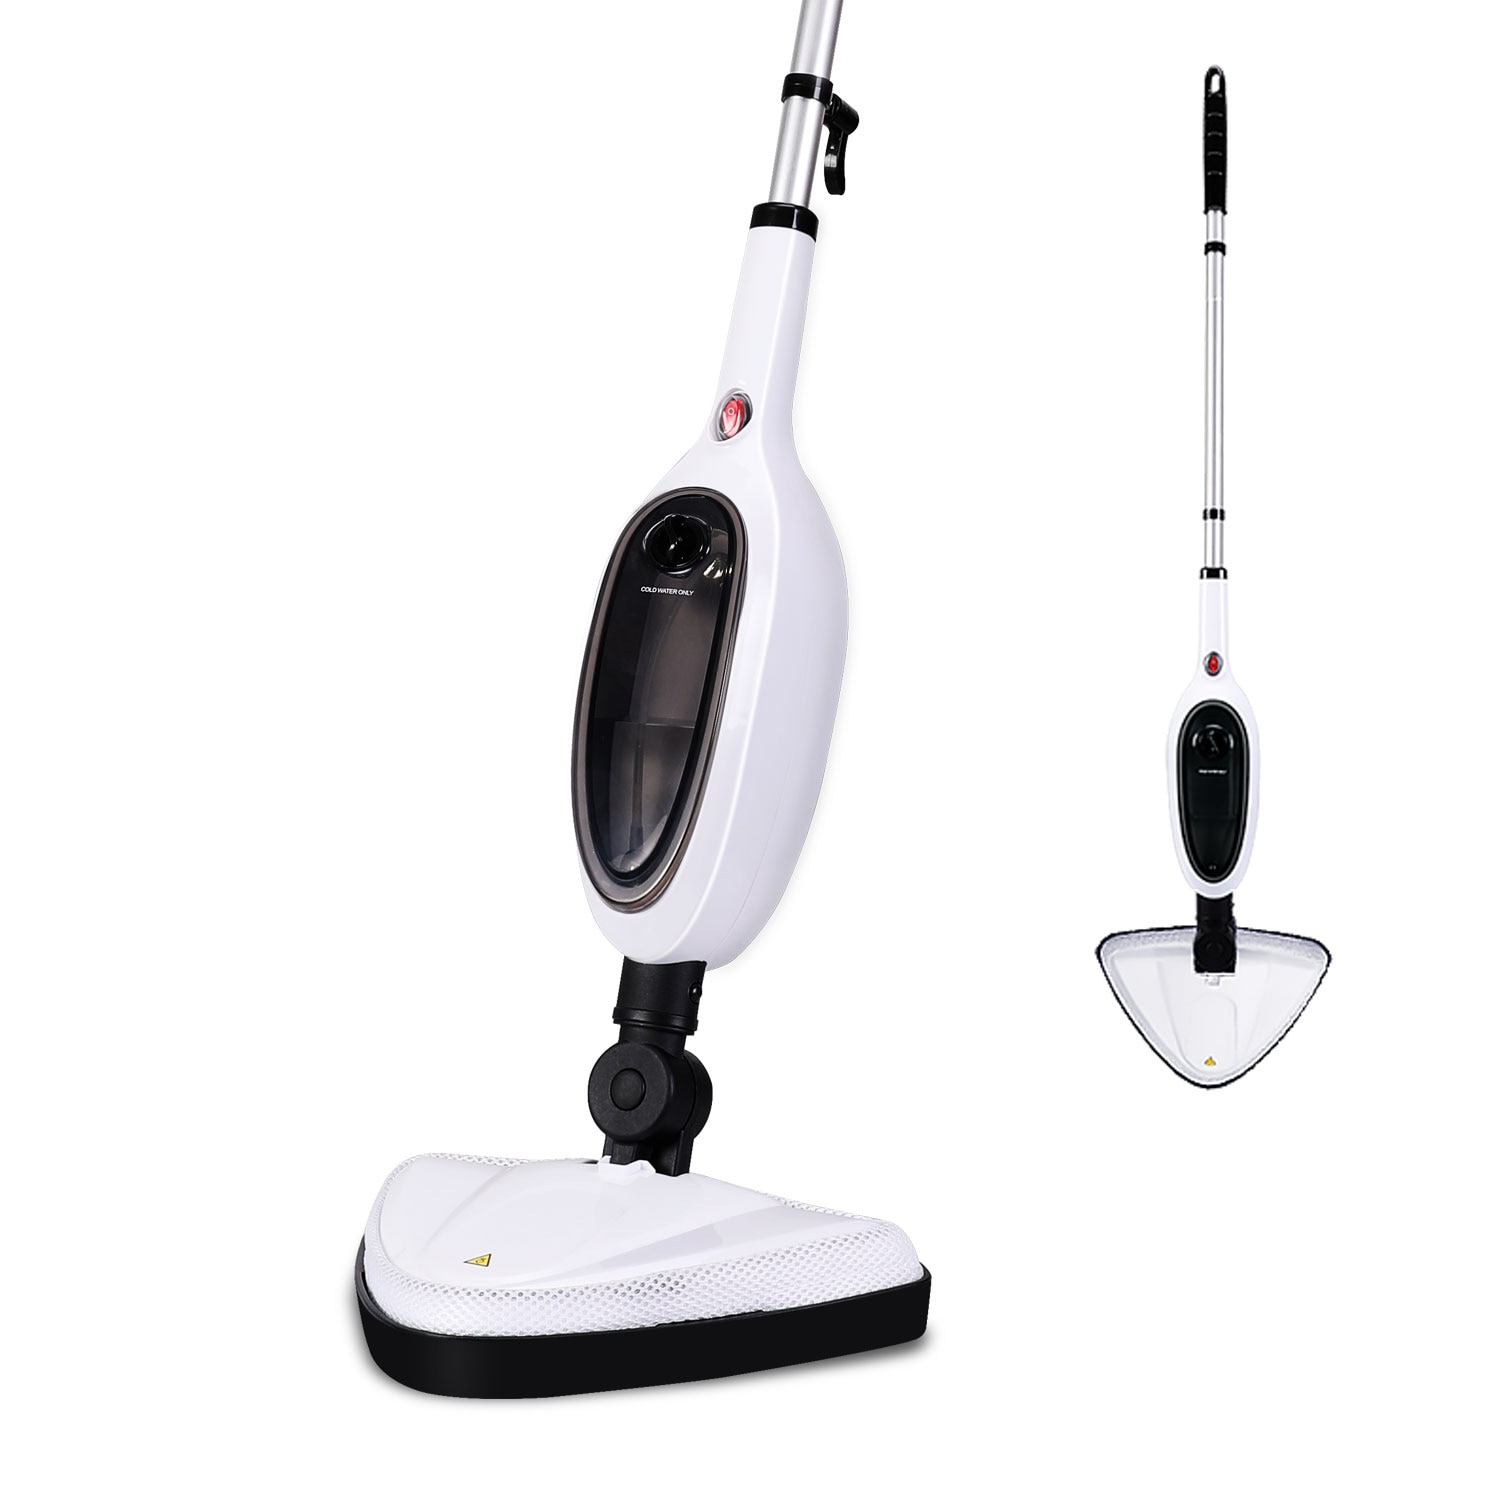 Electric Steam Mop Cleaner for Tile and Hardwood Use Floor Steamer for Carpet and Floor with Convenient Detachable Handle